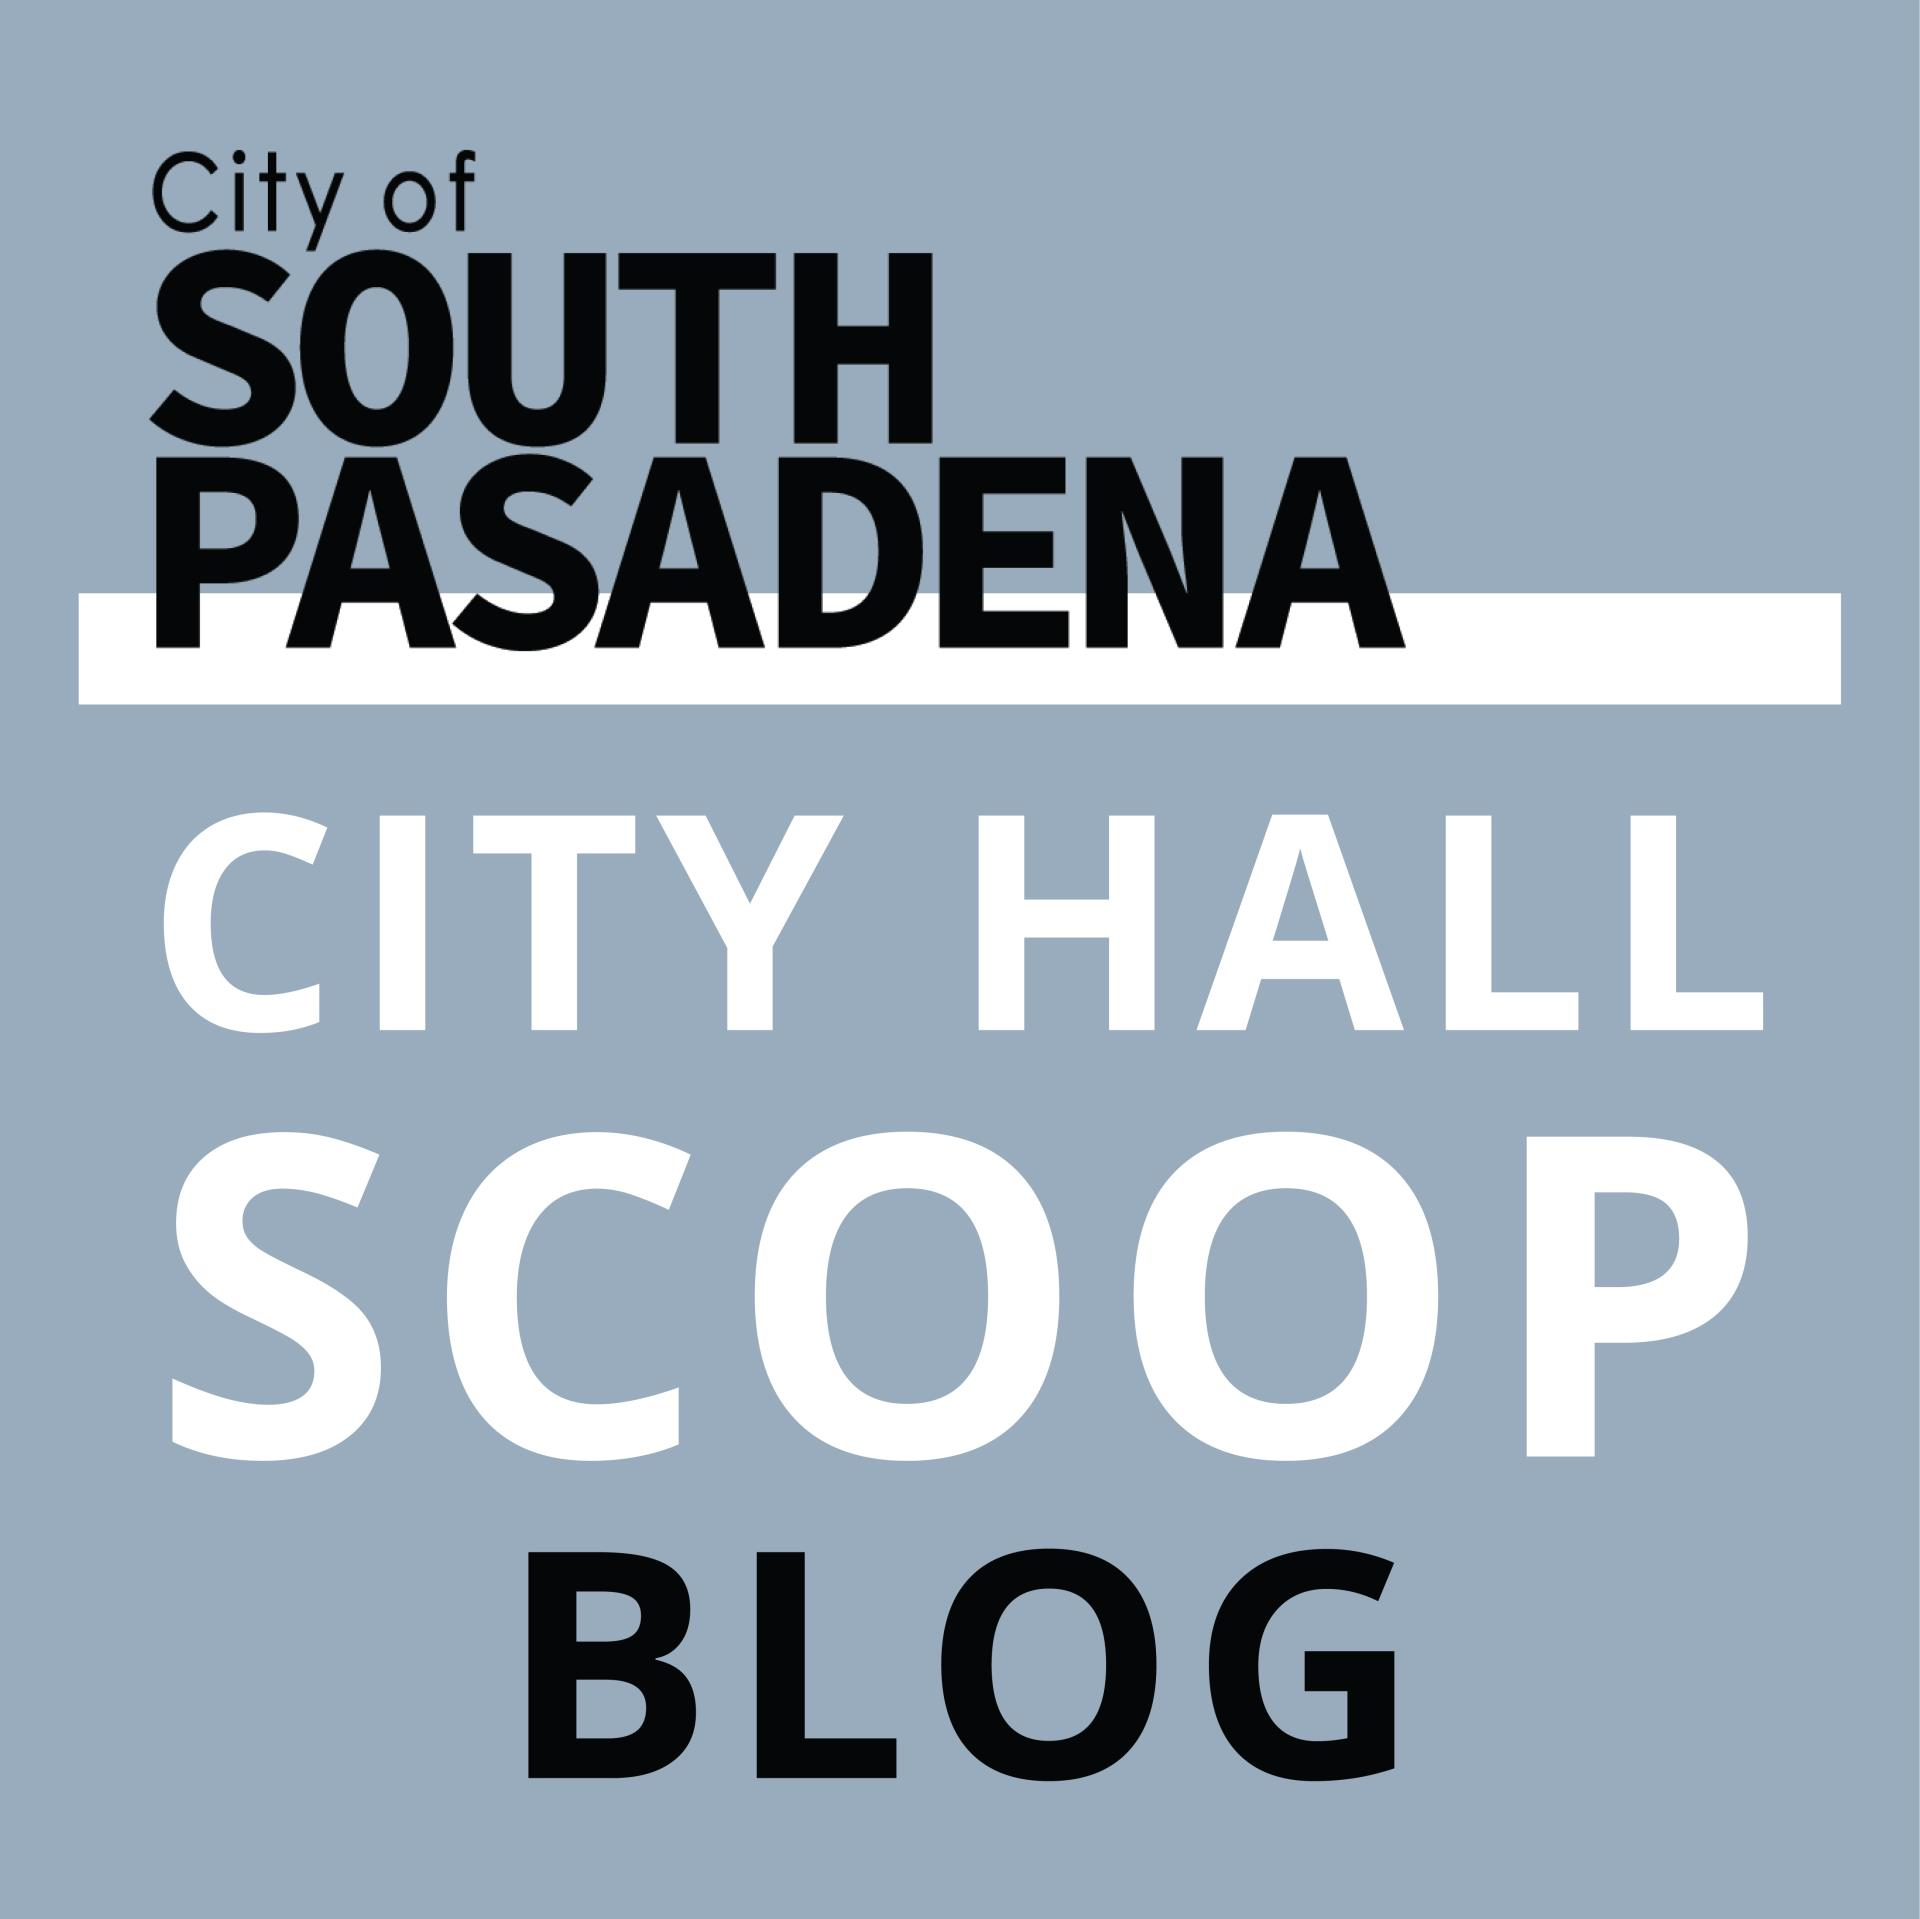 cityhallscoop-square-02